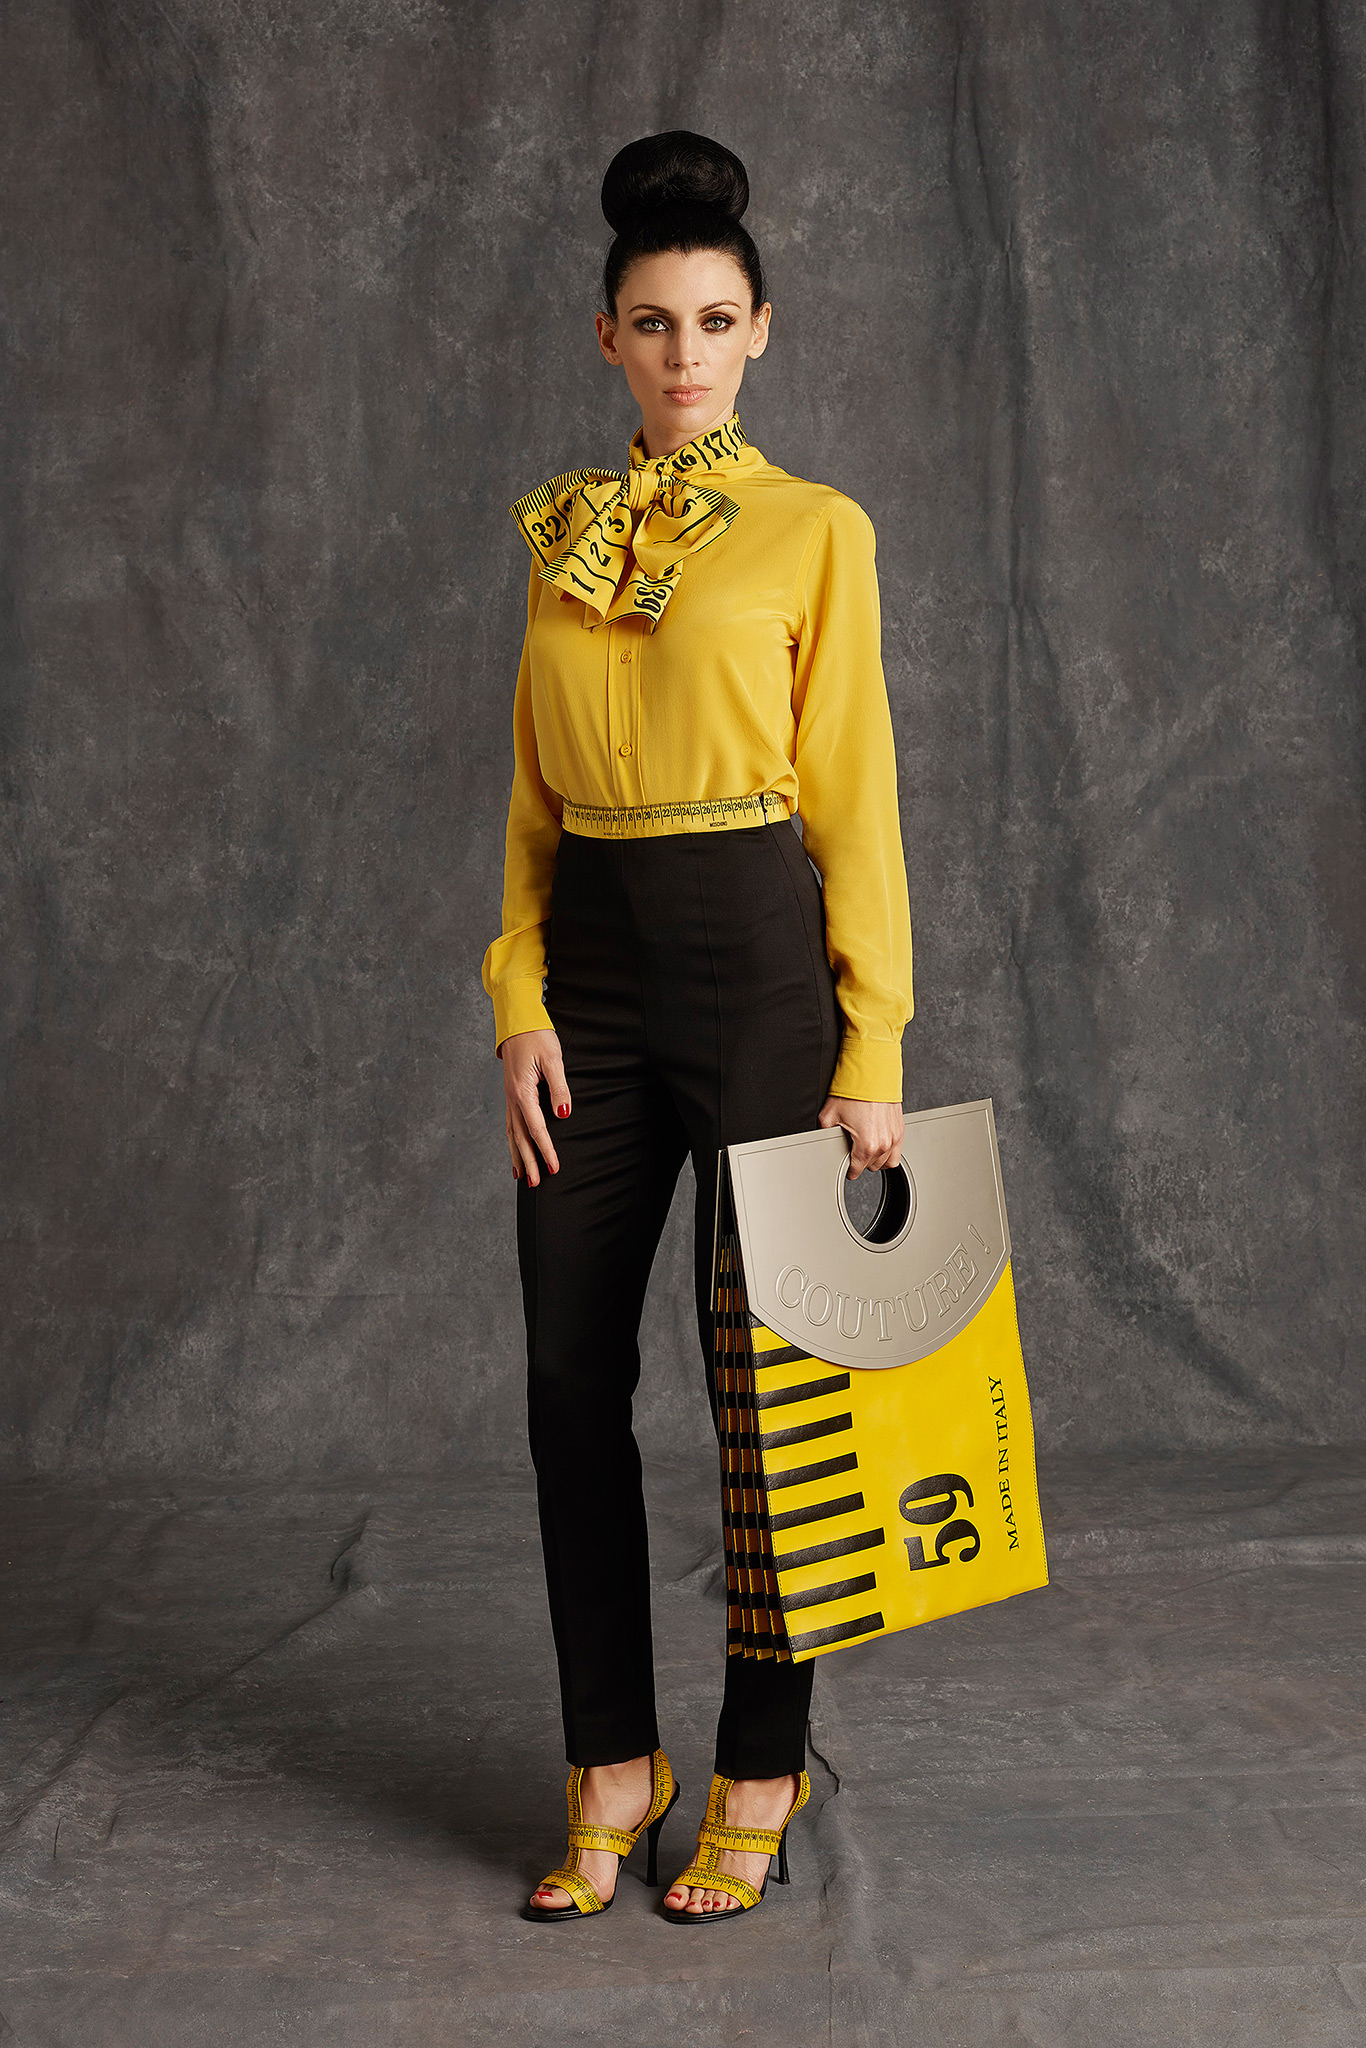 Moschino pre-fall 2015 we fashion trends _19_1366